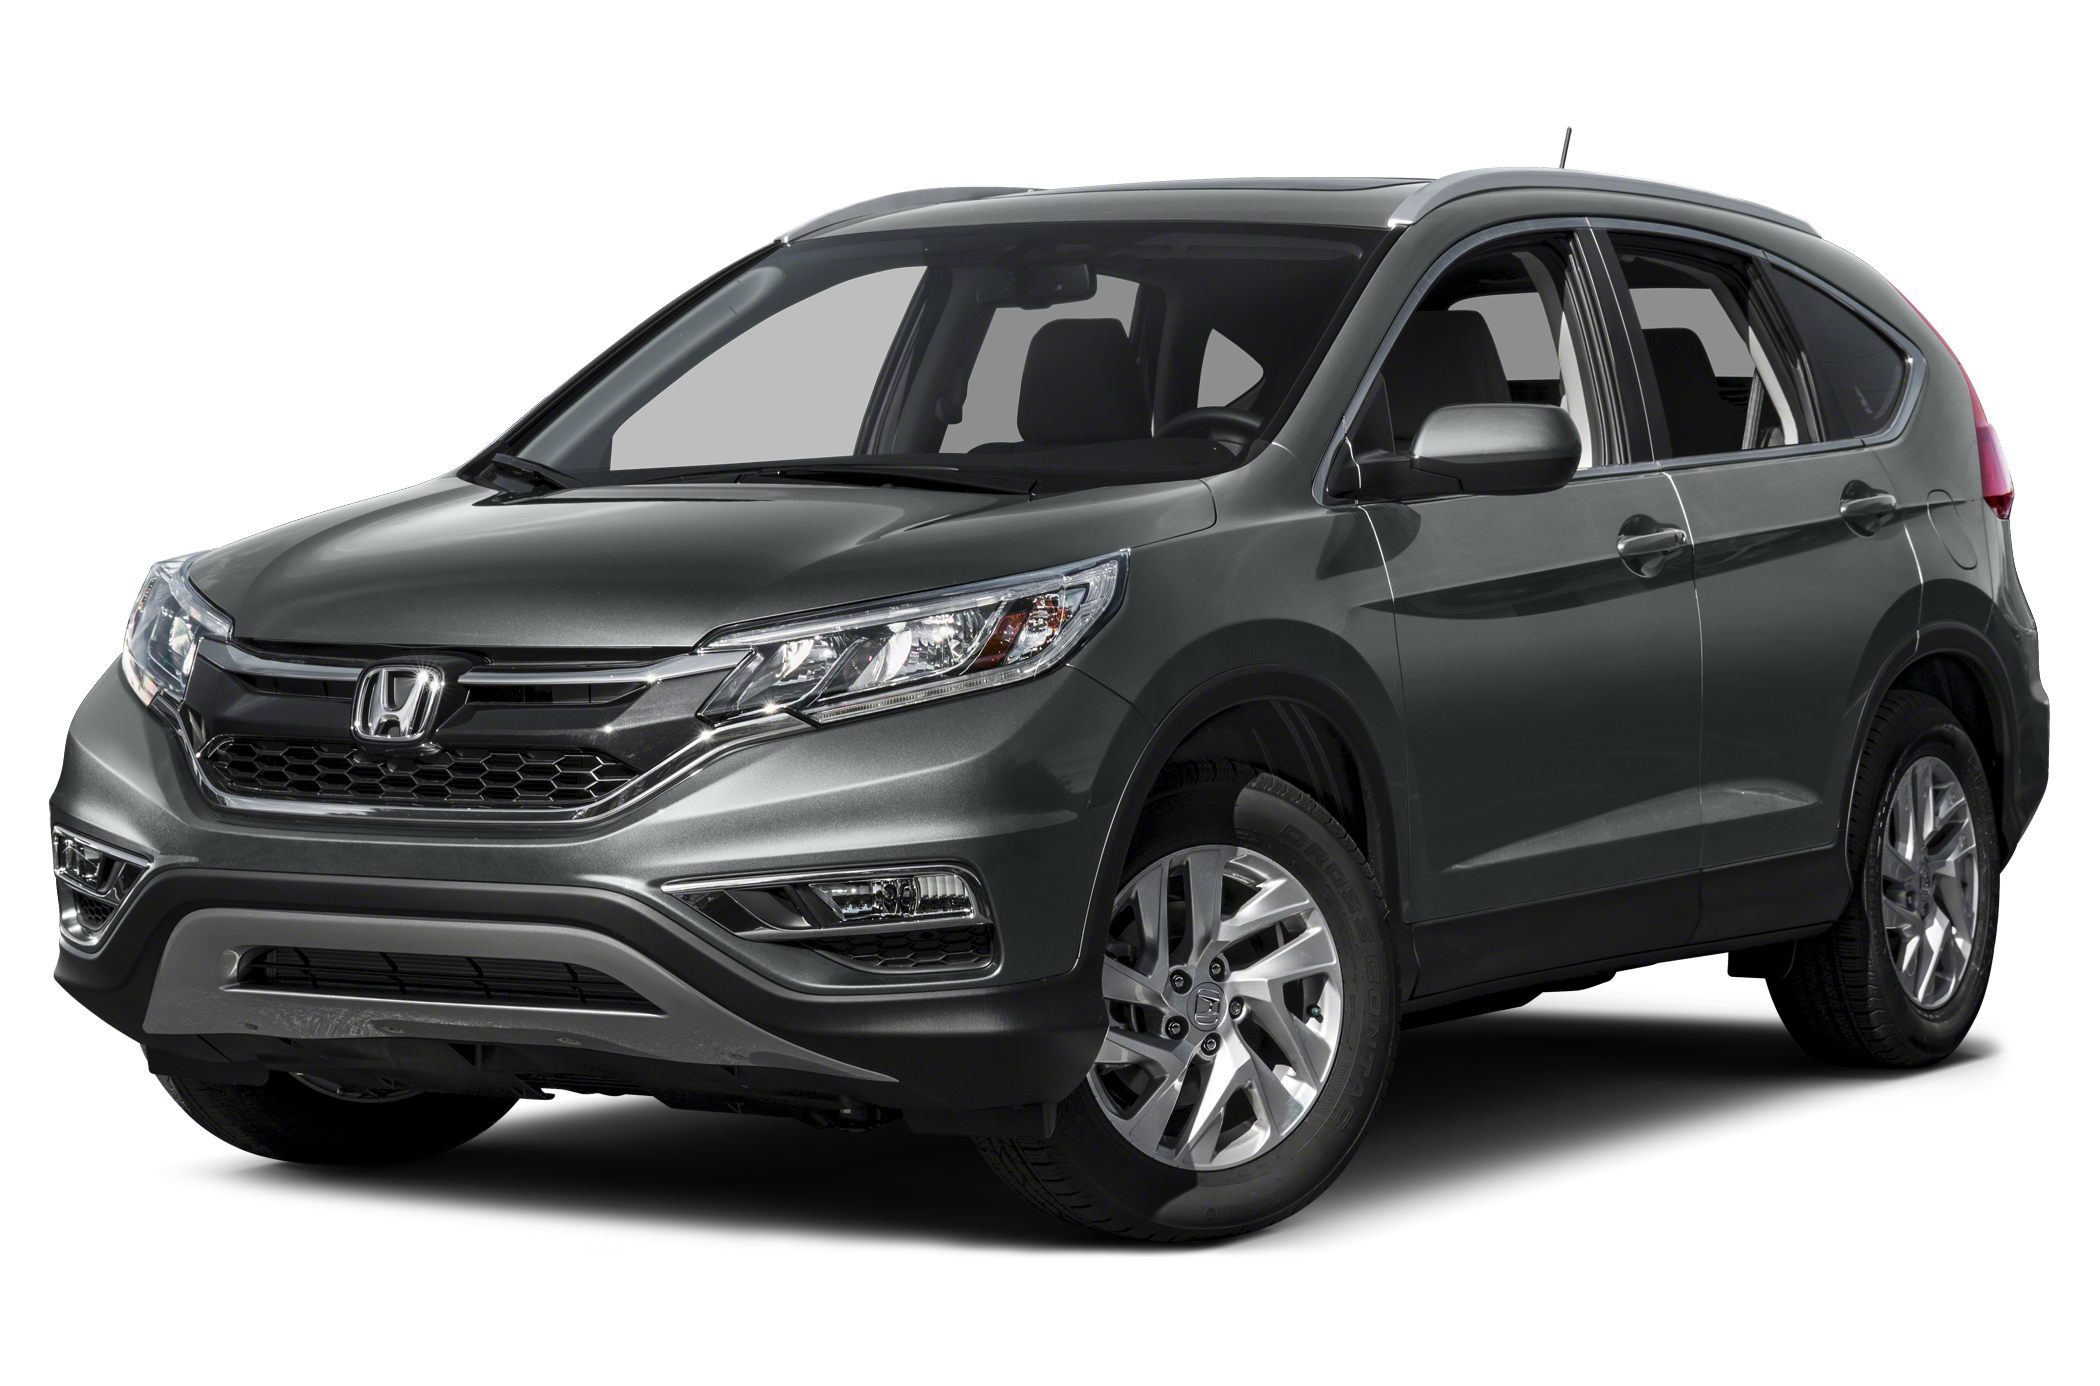 2015 Honda CR-V EX-L SUV for sale in Florida City for $30,525 with 7 miles.